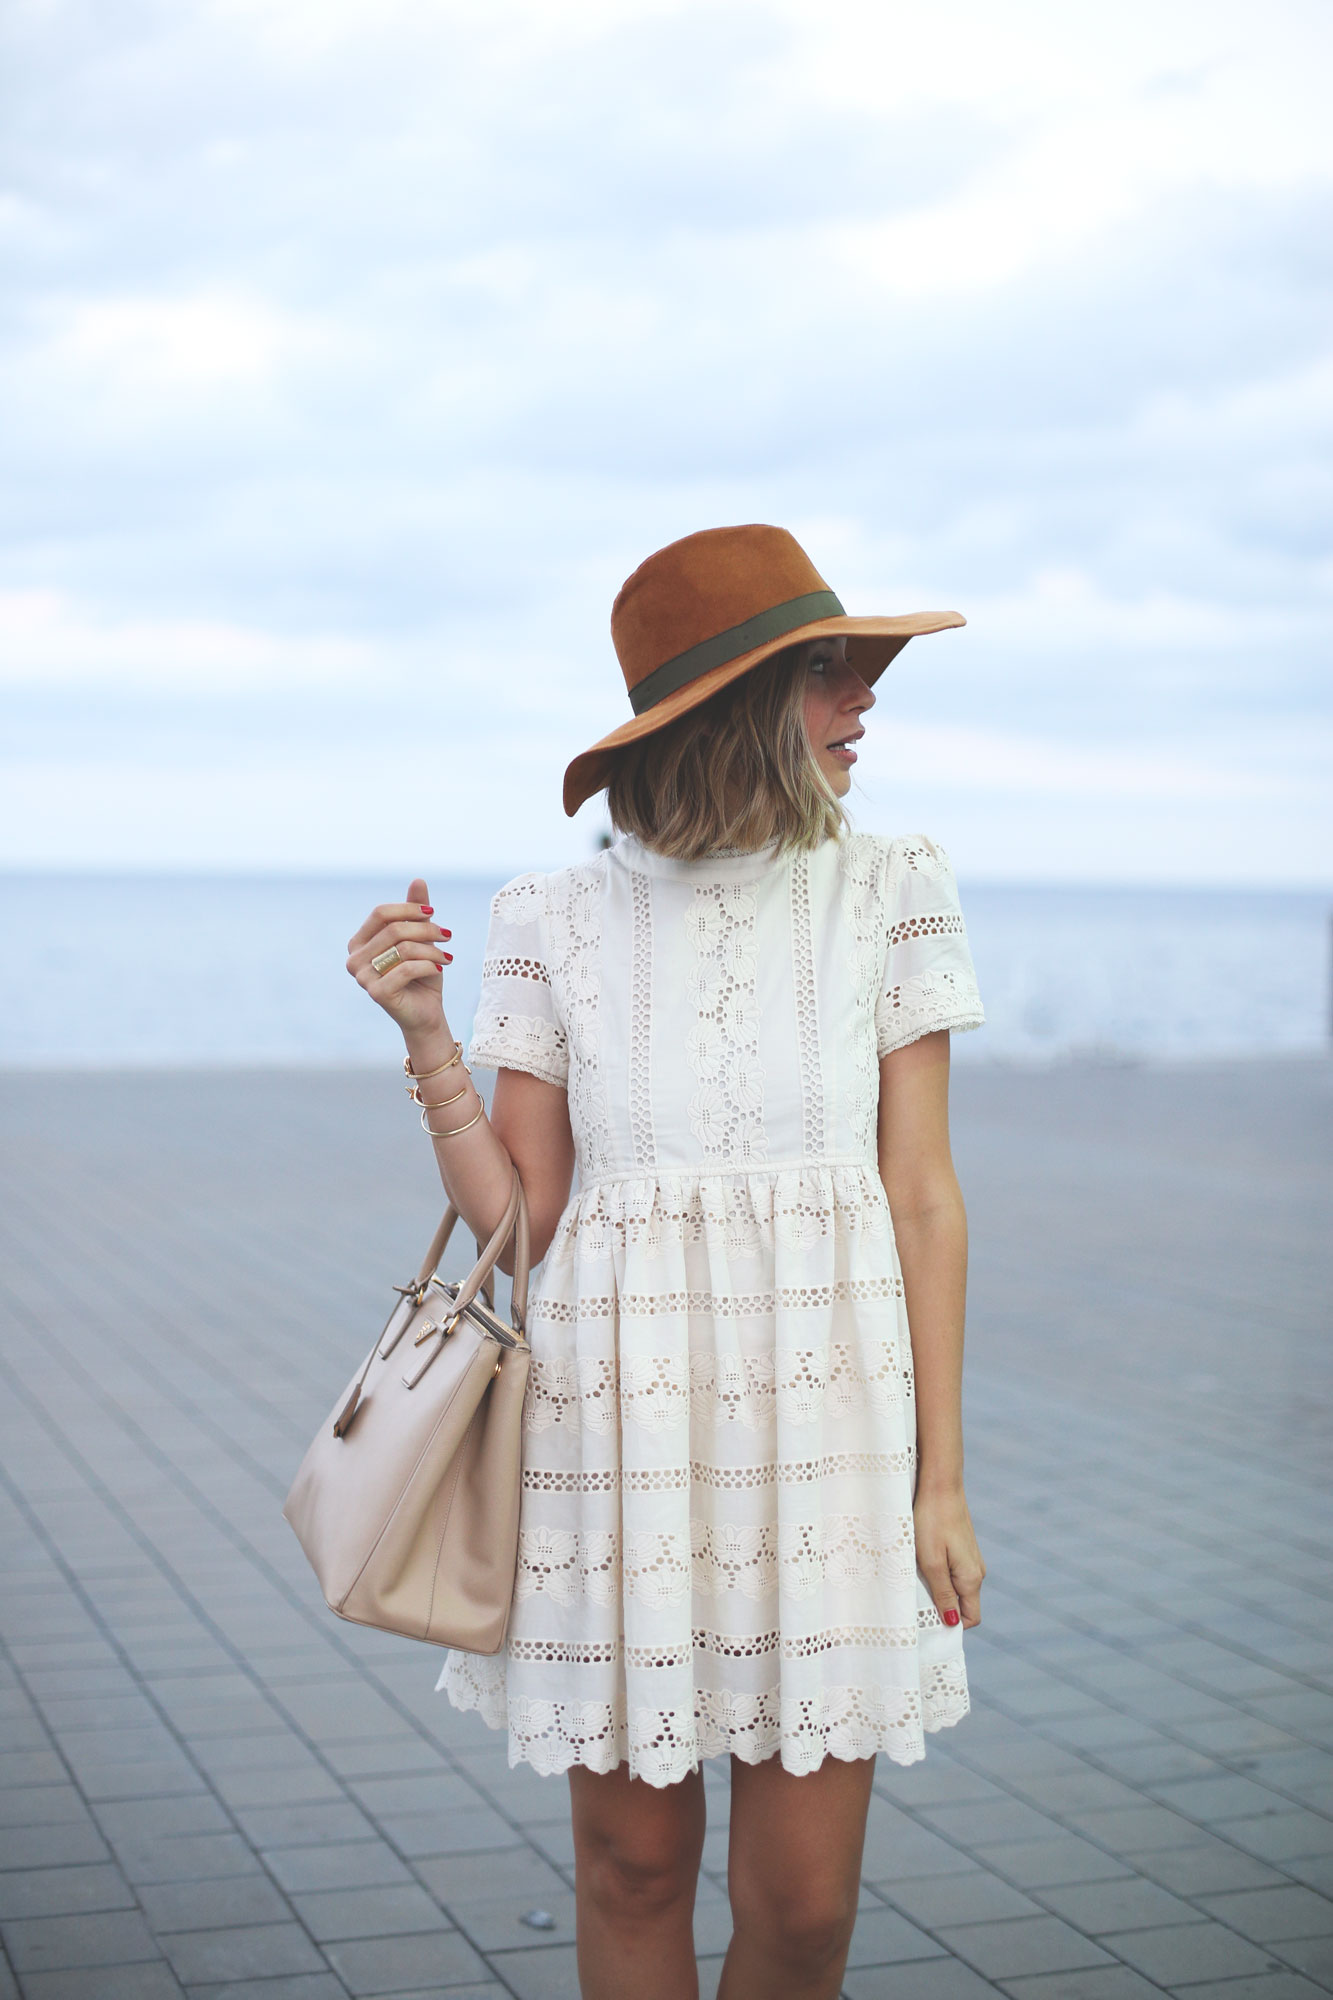 tan hat and white lace dress